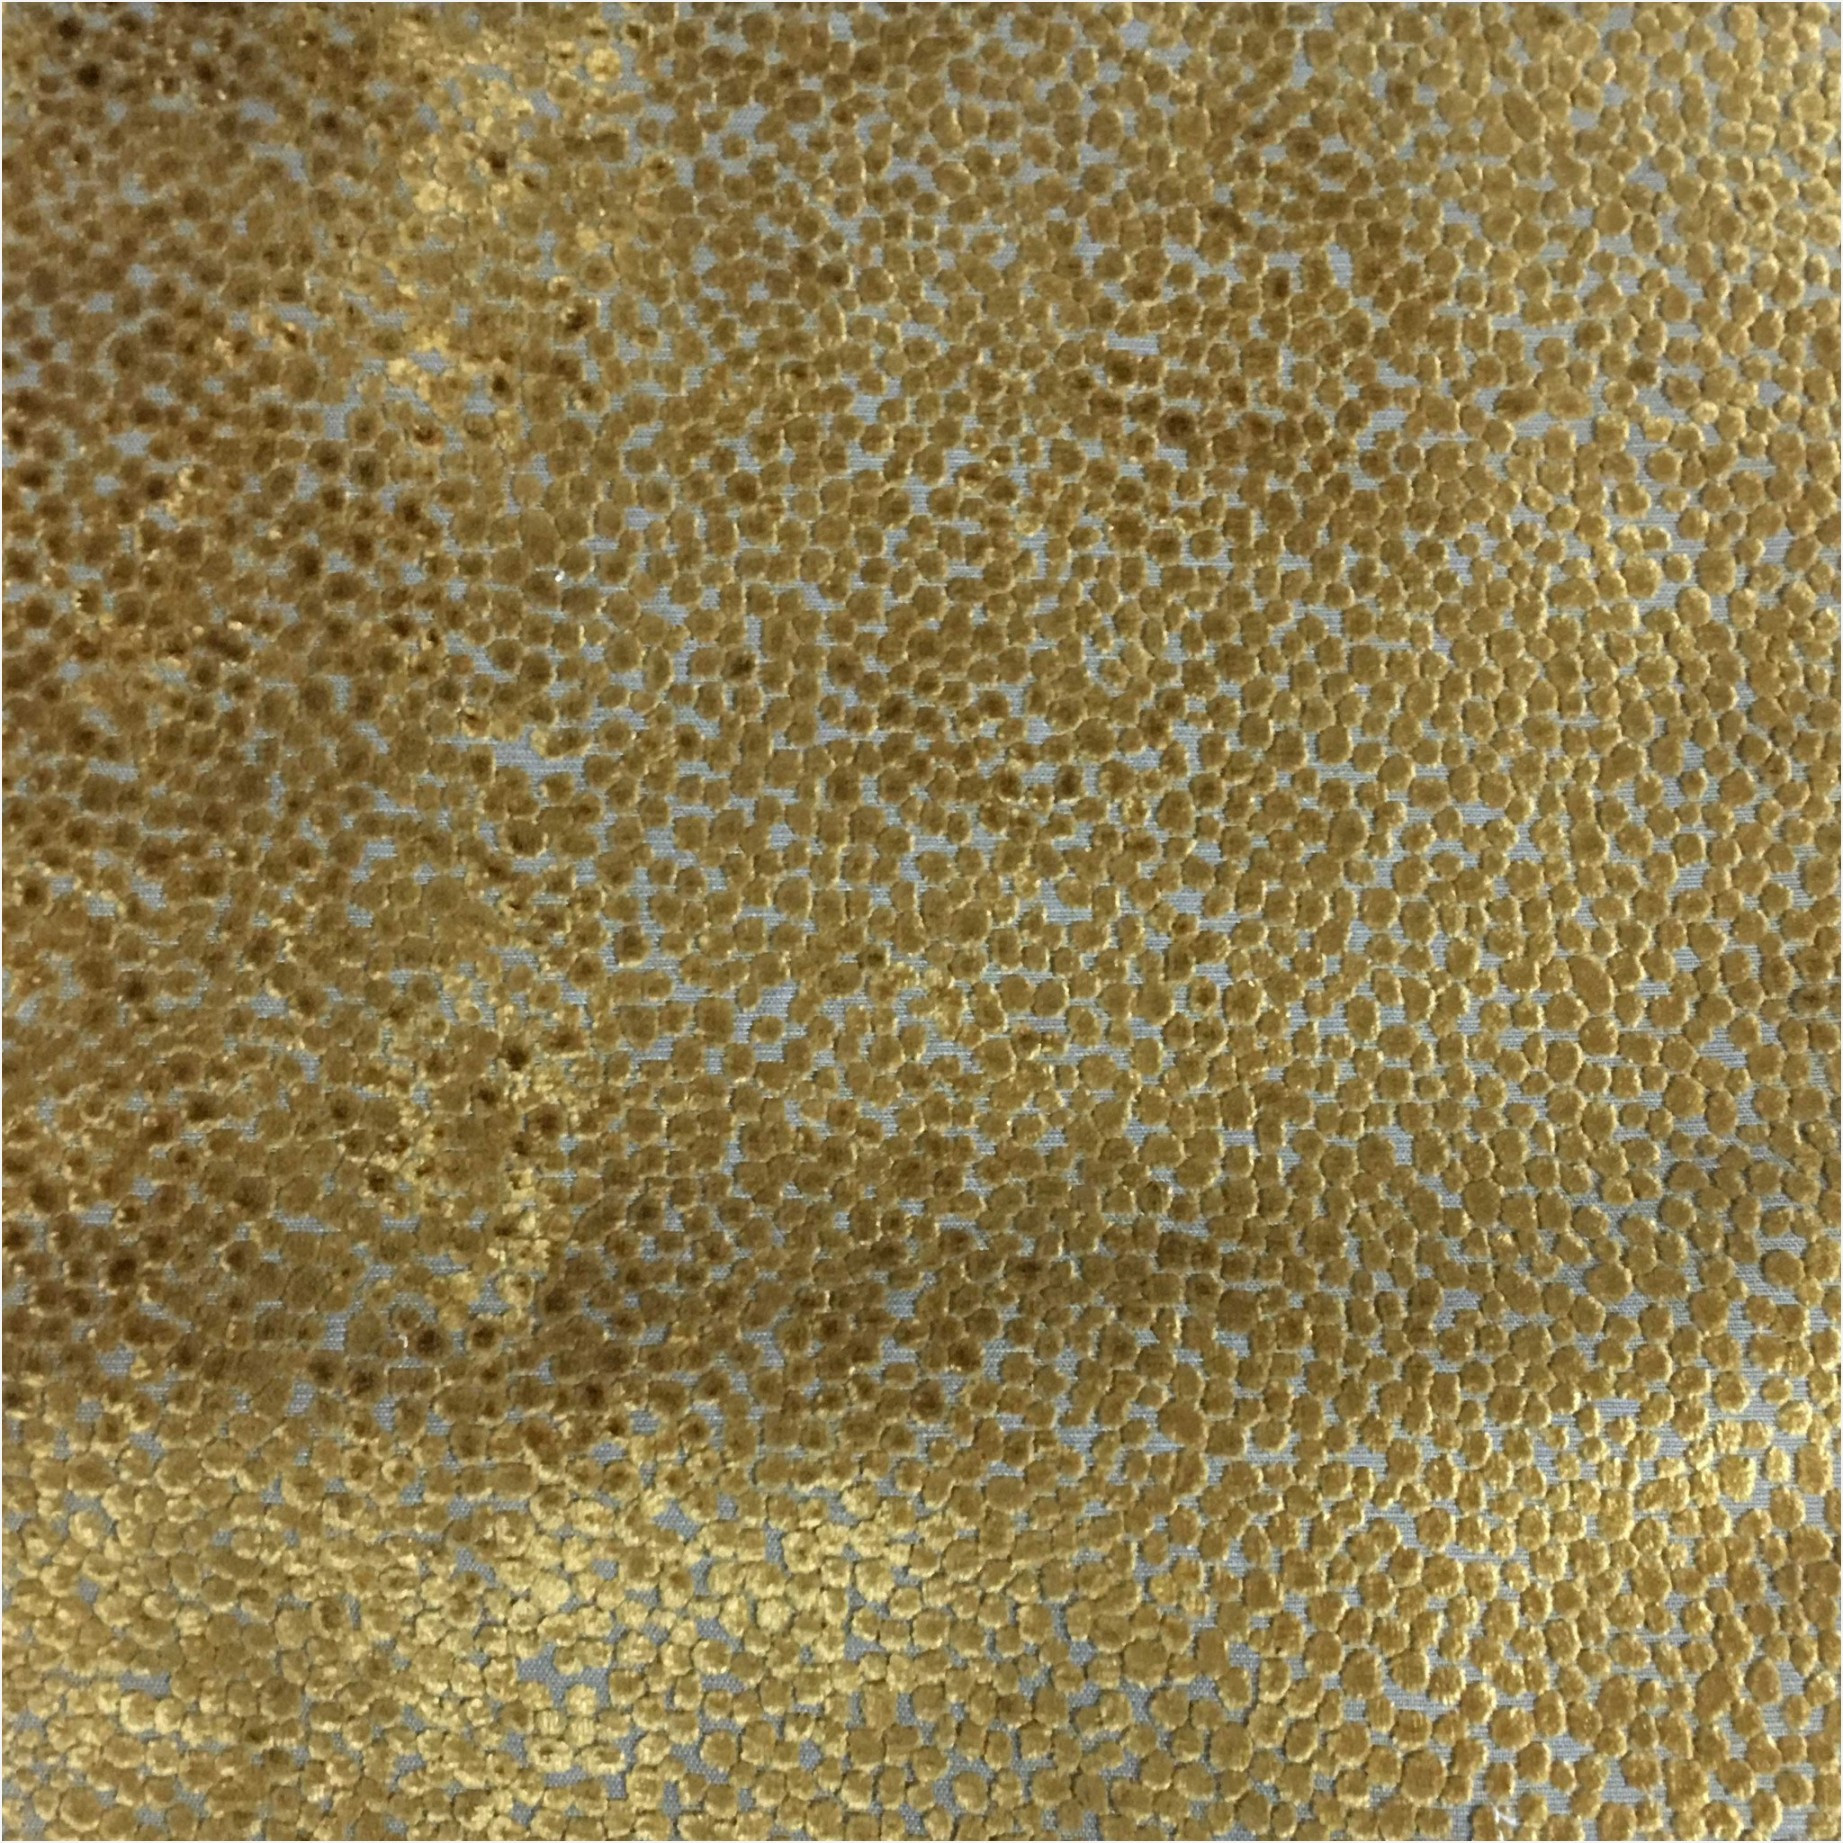 macy's vases decorative accents sale of gold upholstery fabric awesome florence dots burnout velvet intended for gold upholstery fabric awesome florence dots burnout velvet upholstery fabric by the yard